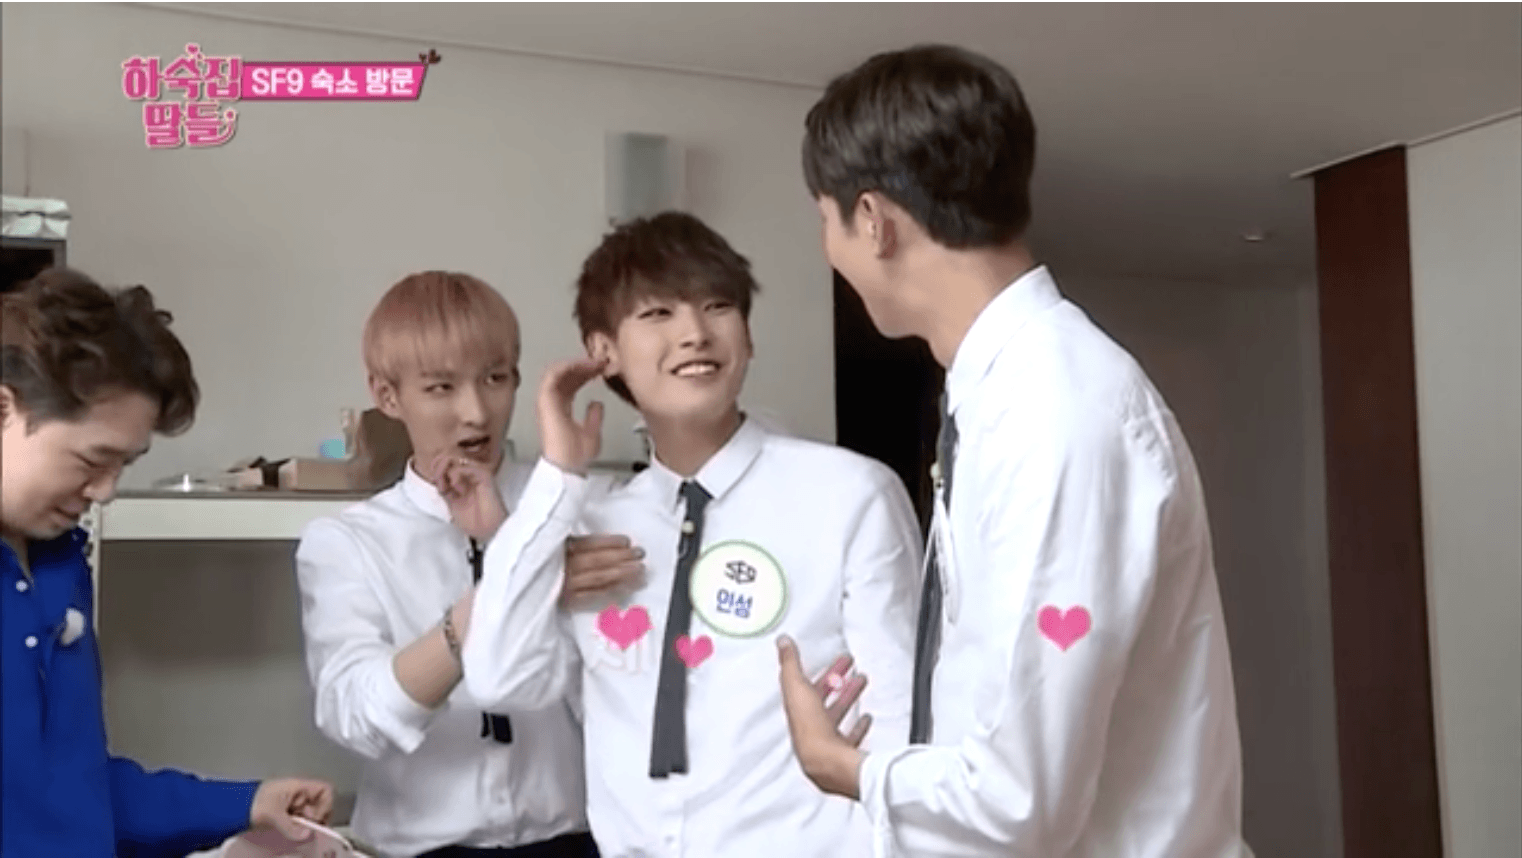 Idol boy group gives a sneak peek into their most intimate area